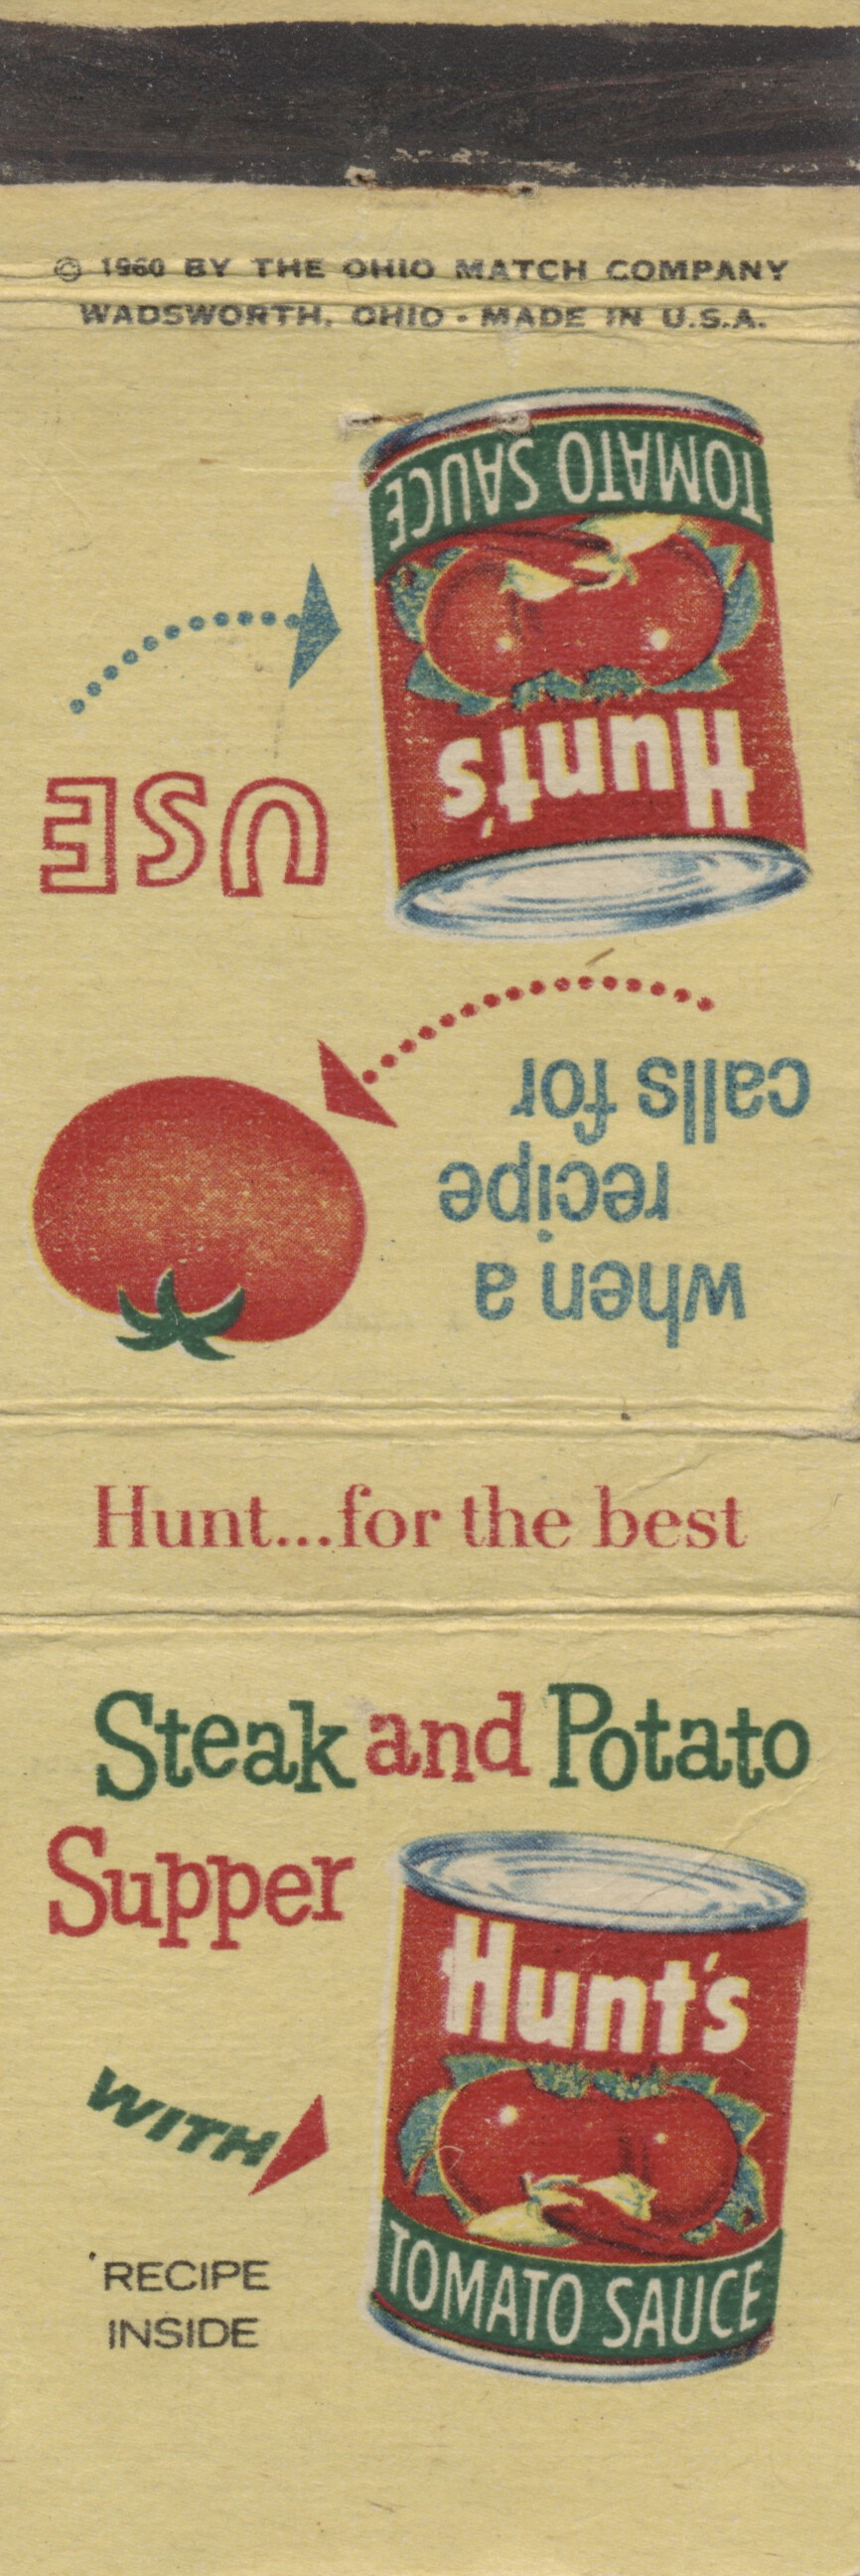 Hunt's Recipe Matchbooks, Vol. 5